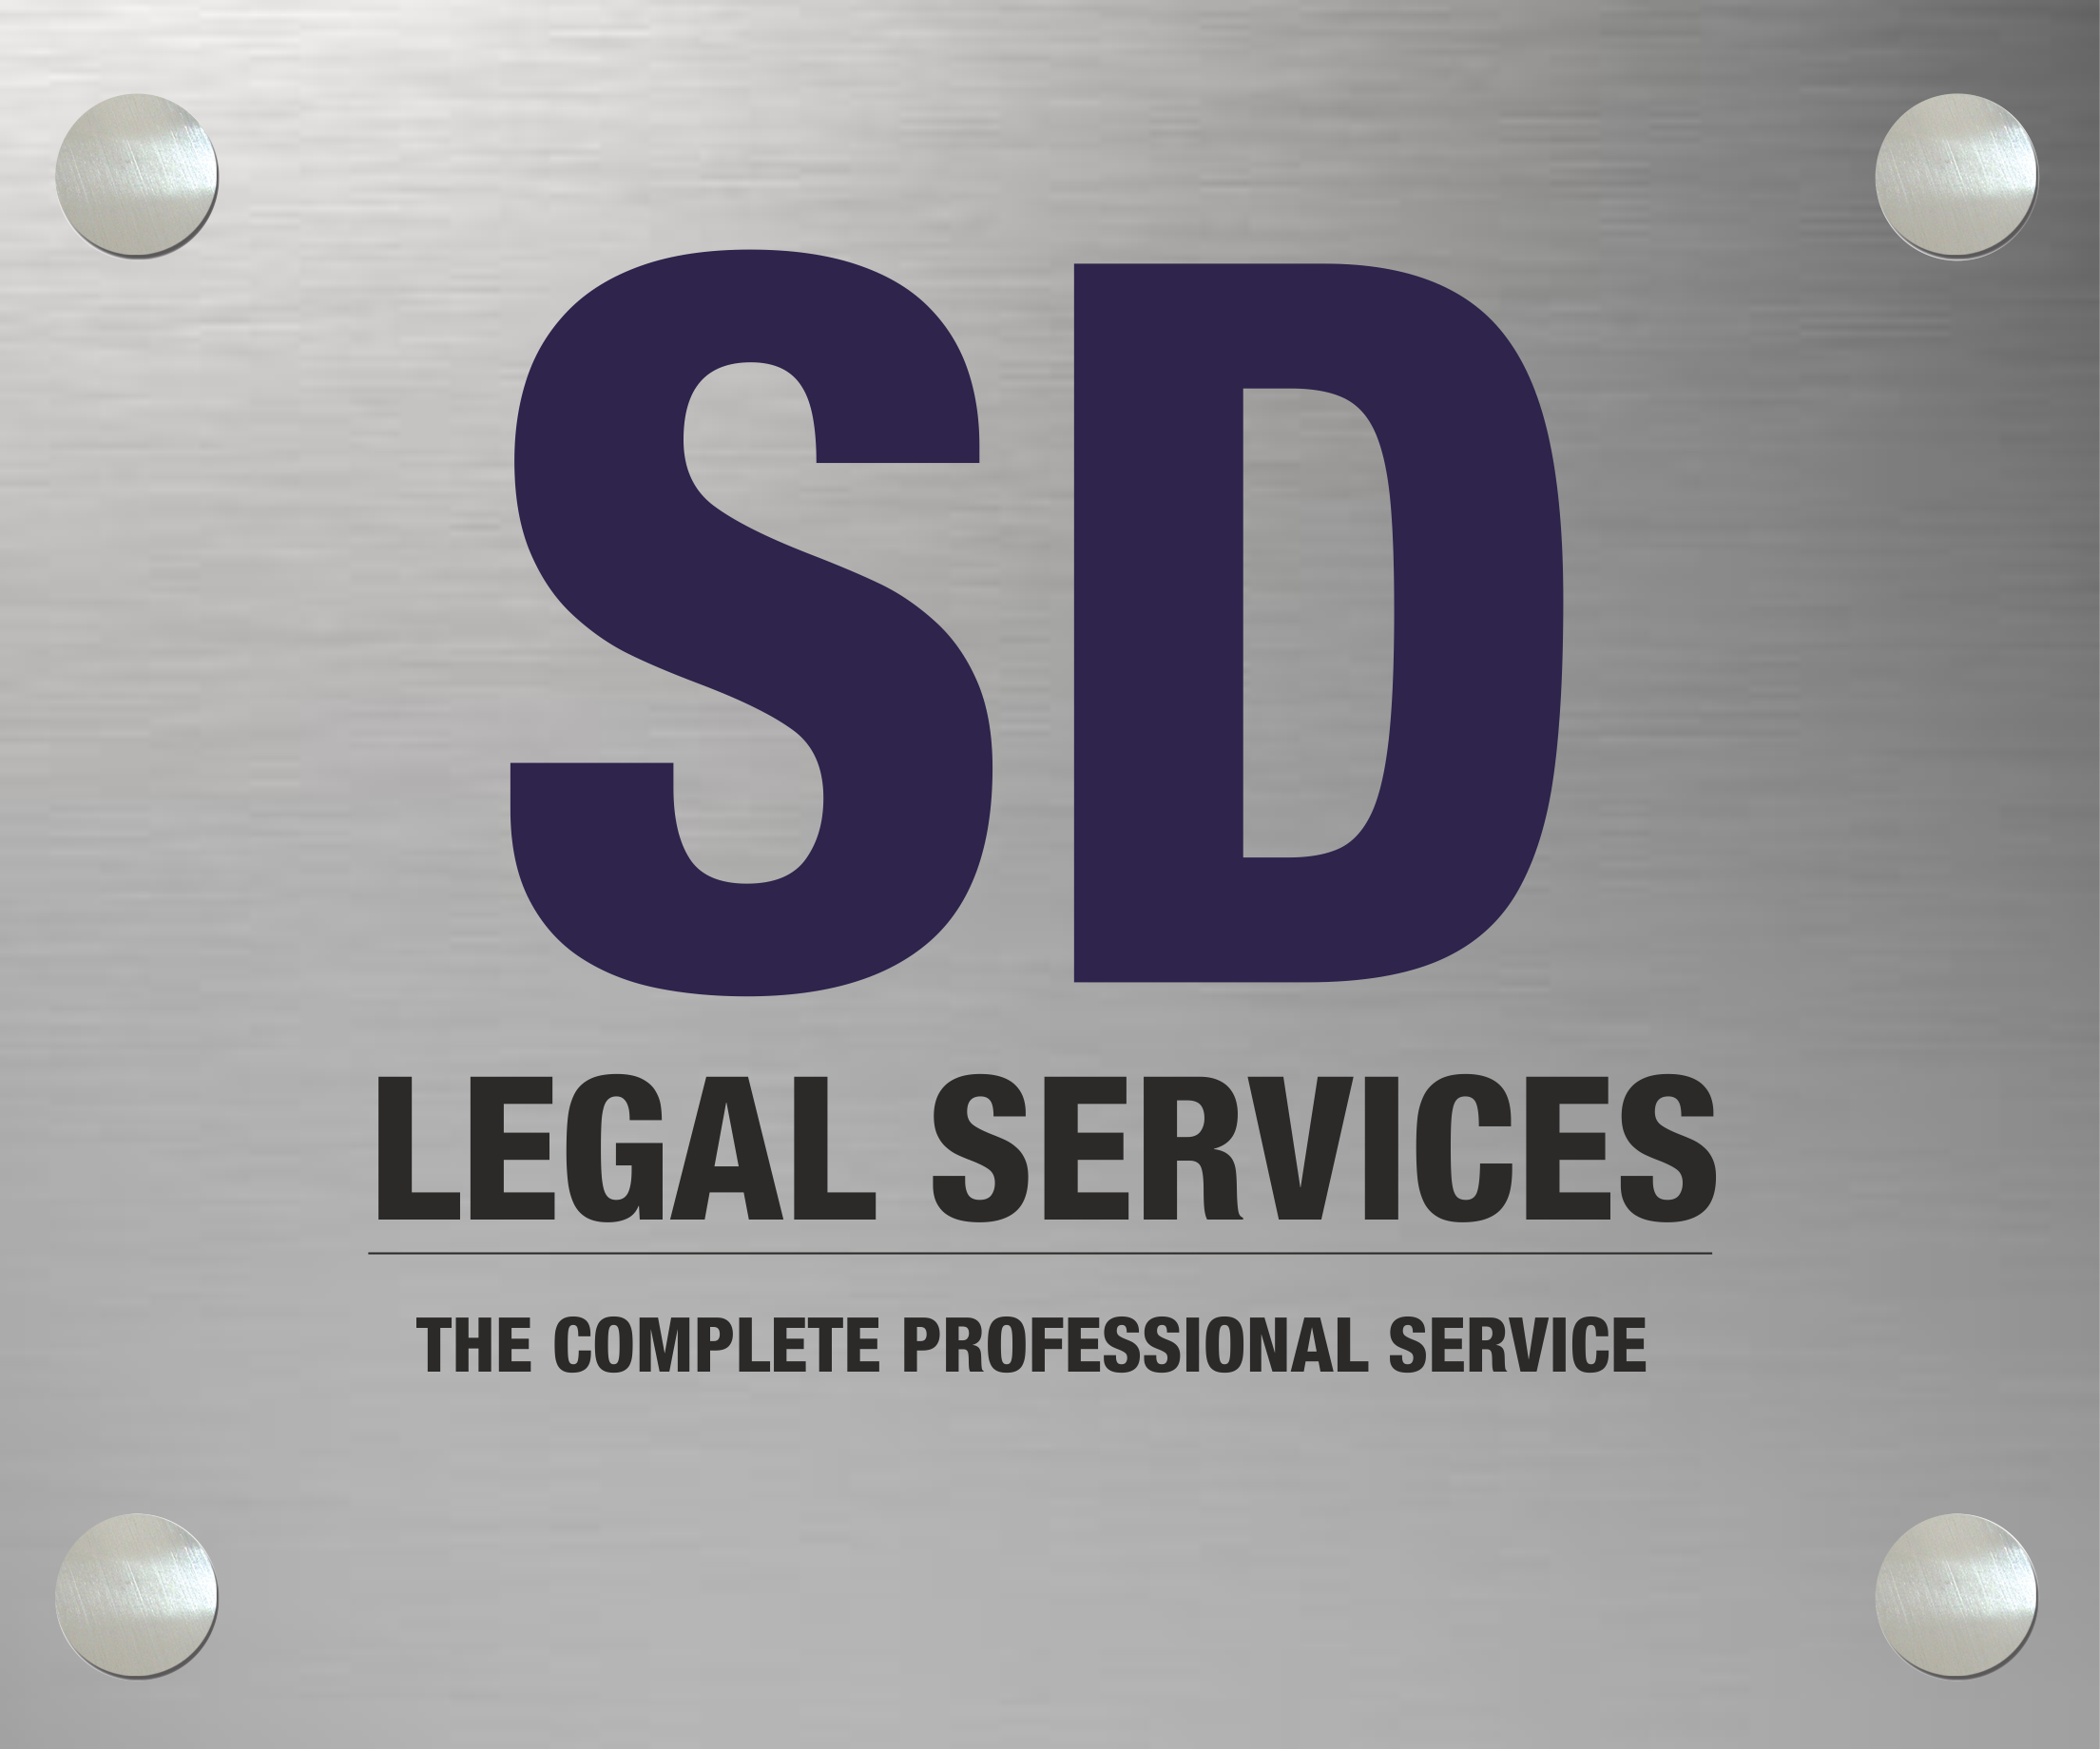 SD Legal Services